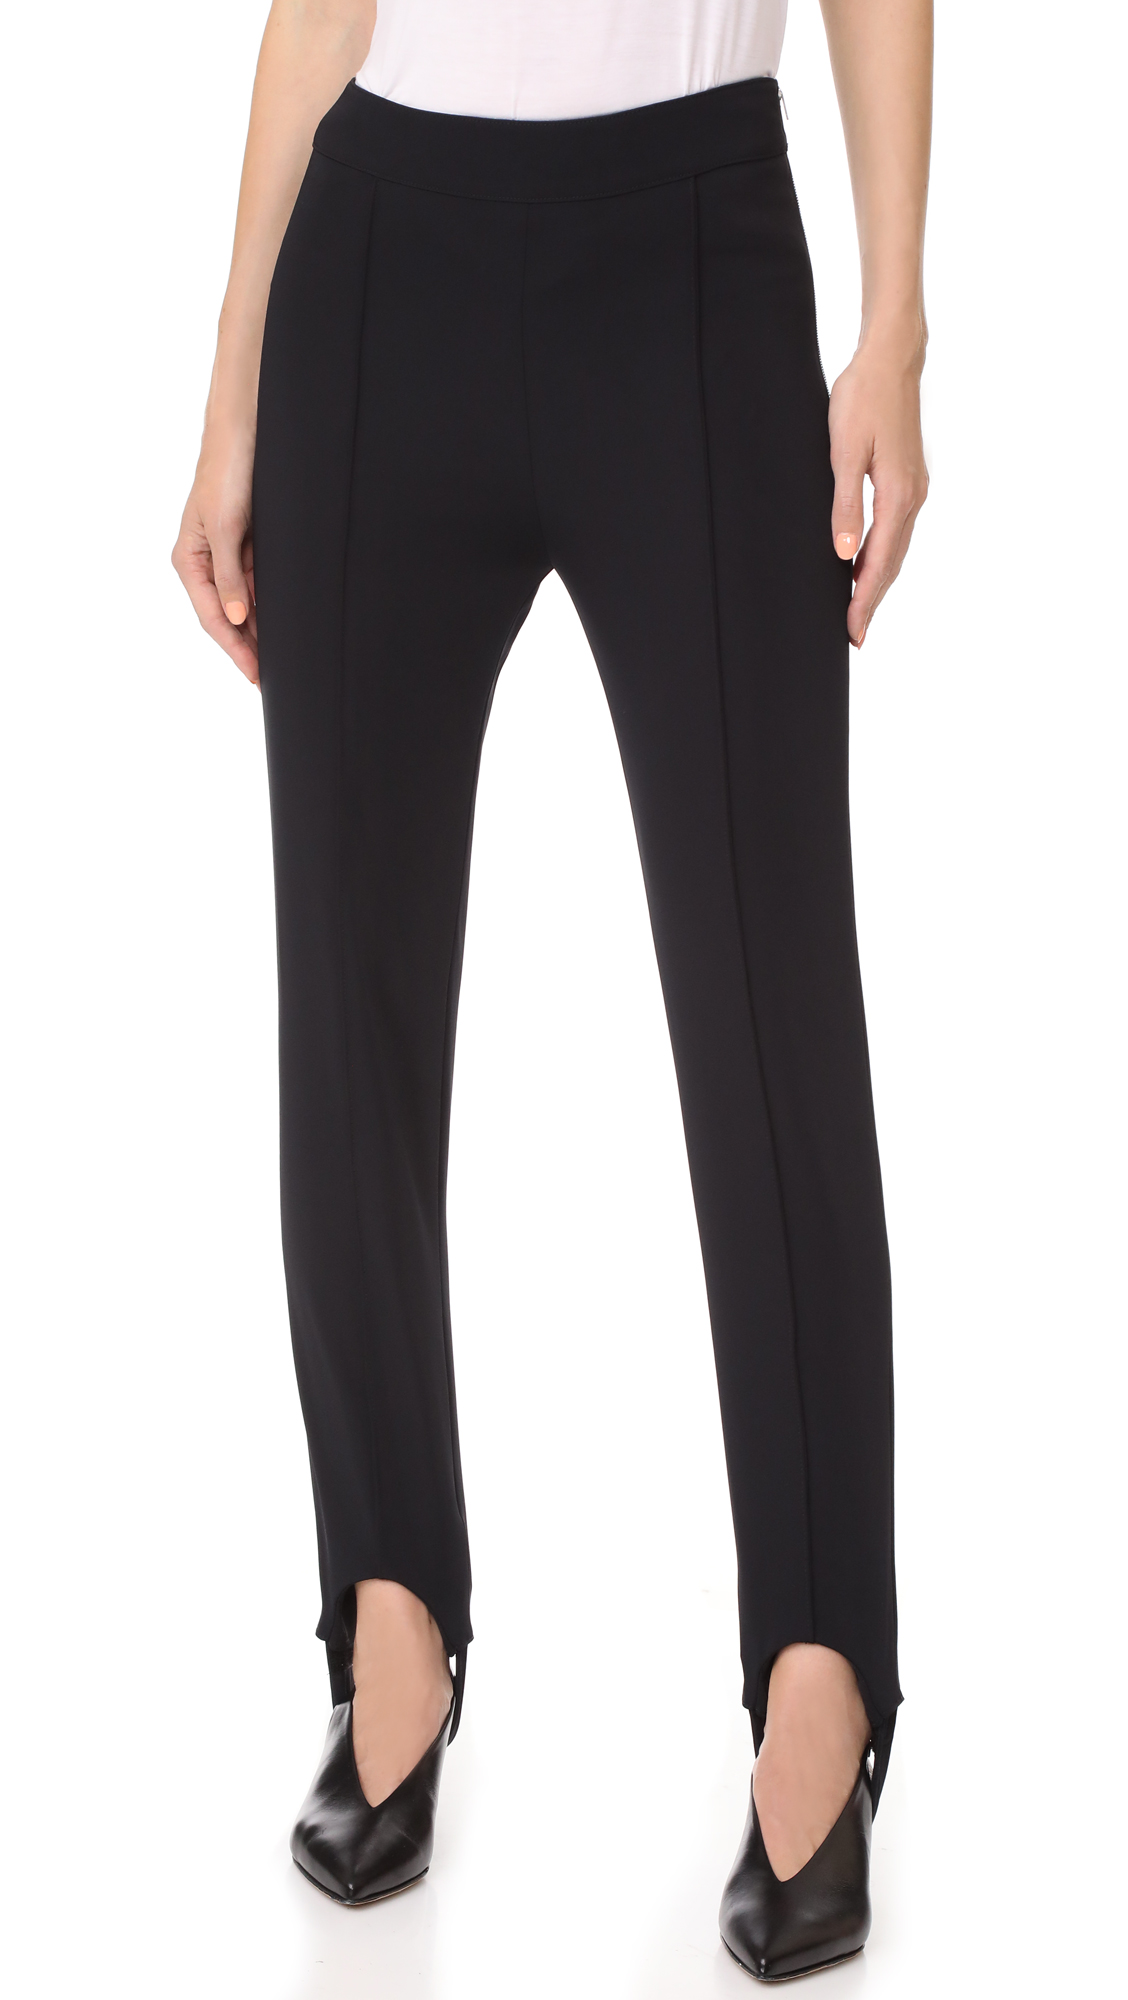 Acne Studios Tecia Tech Stirrup Pants - Navy